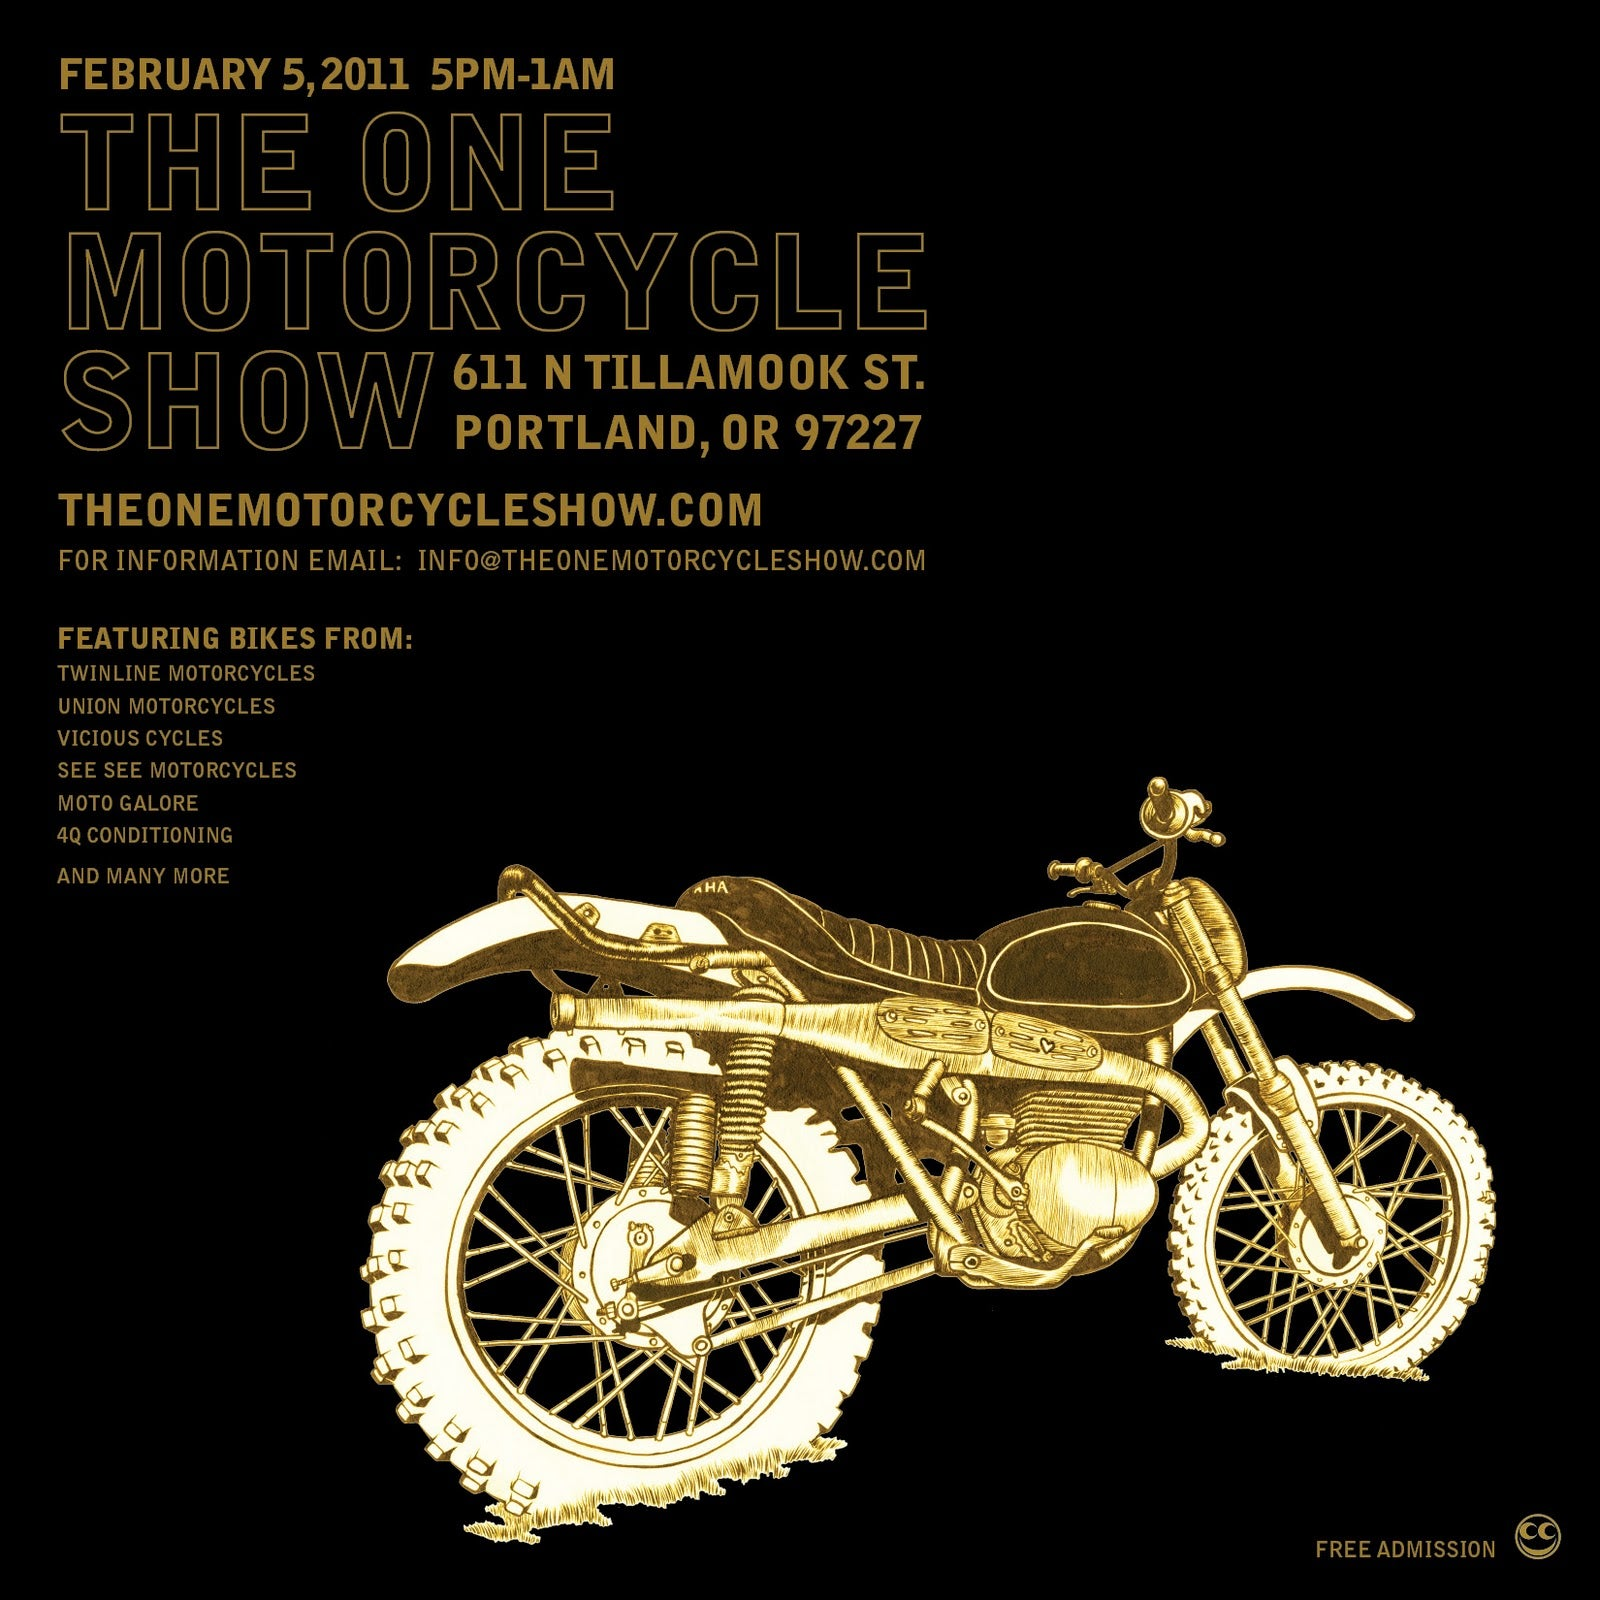 The One Motorcycle Show: Portland